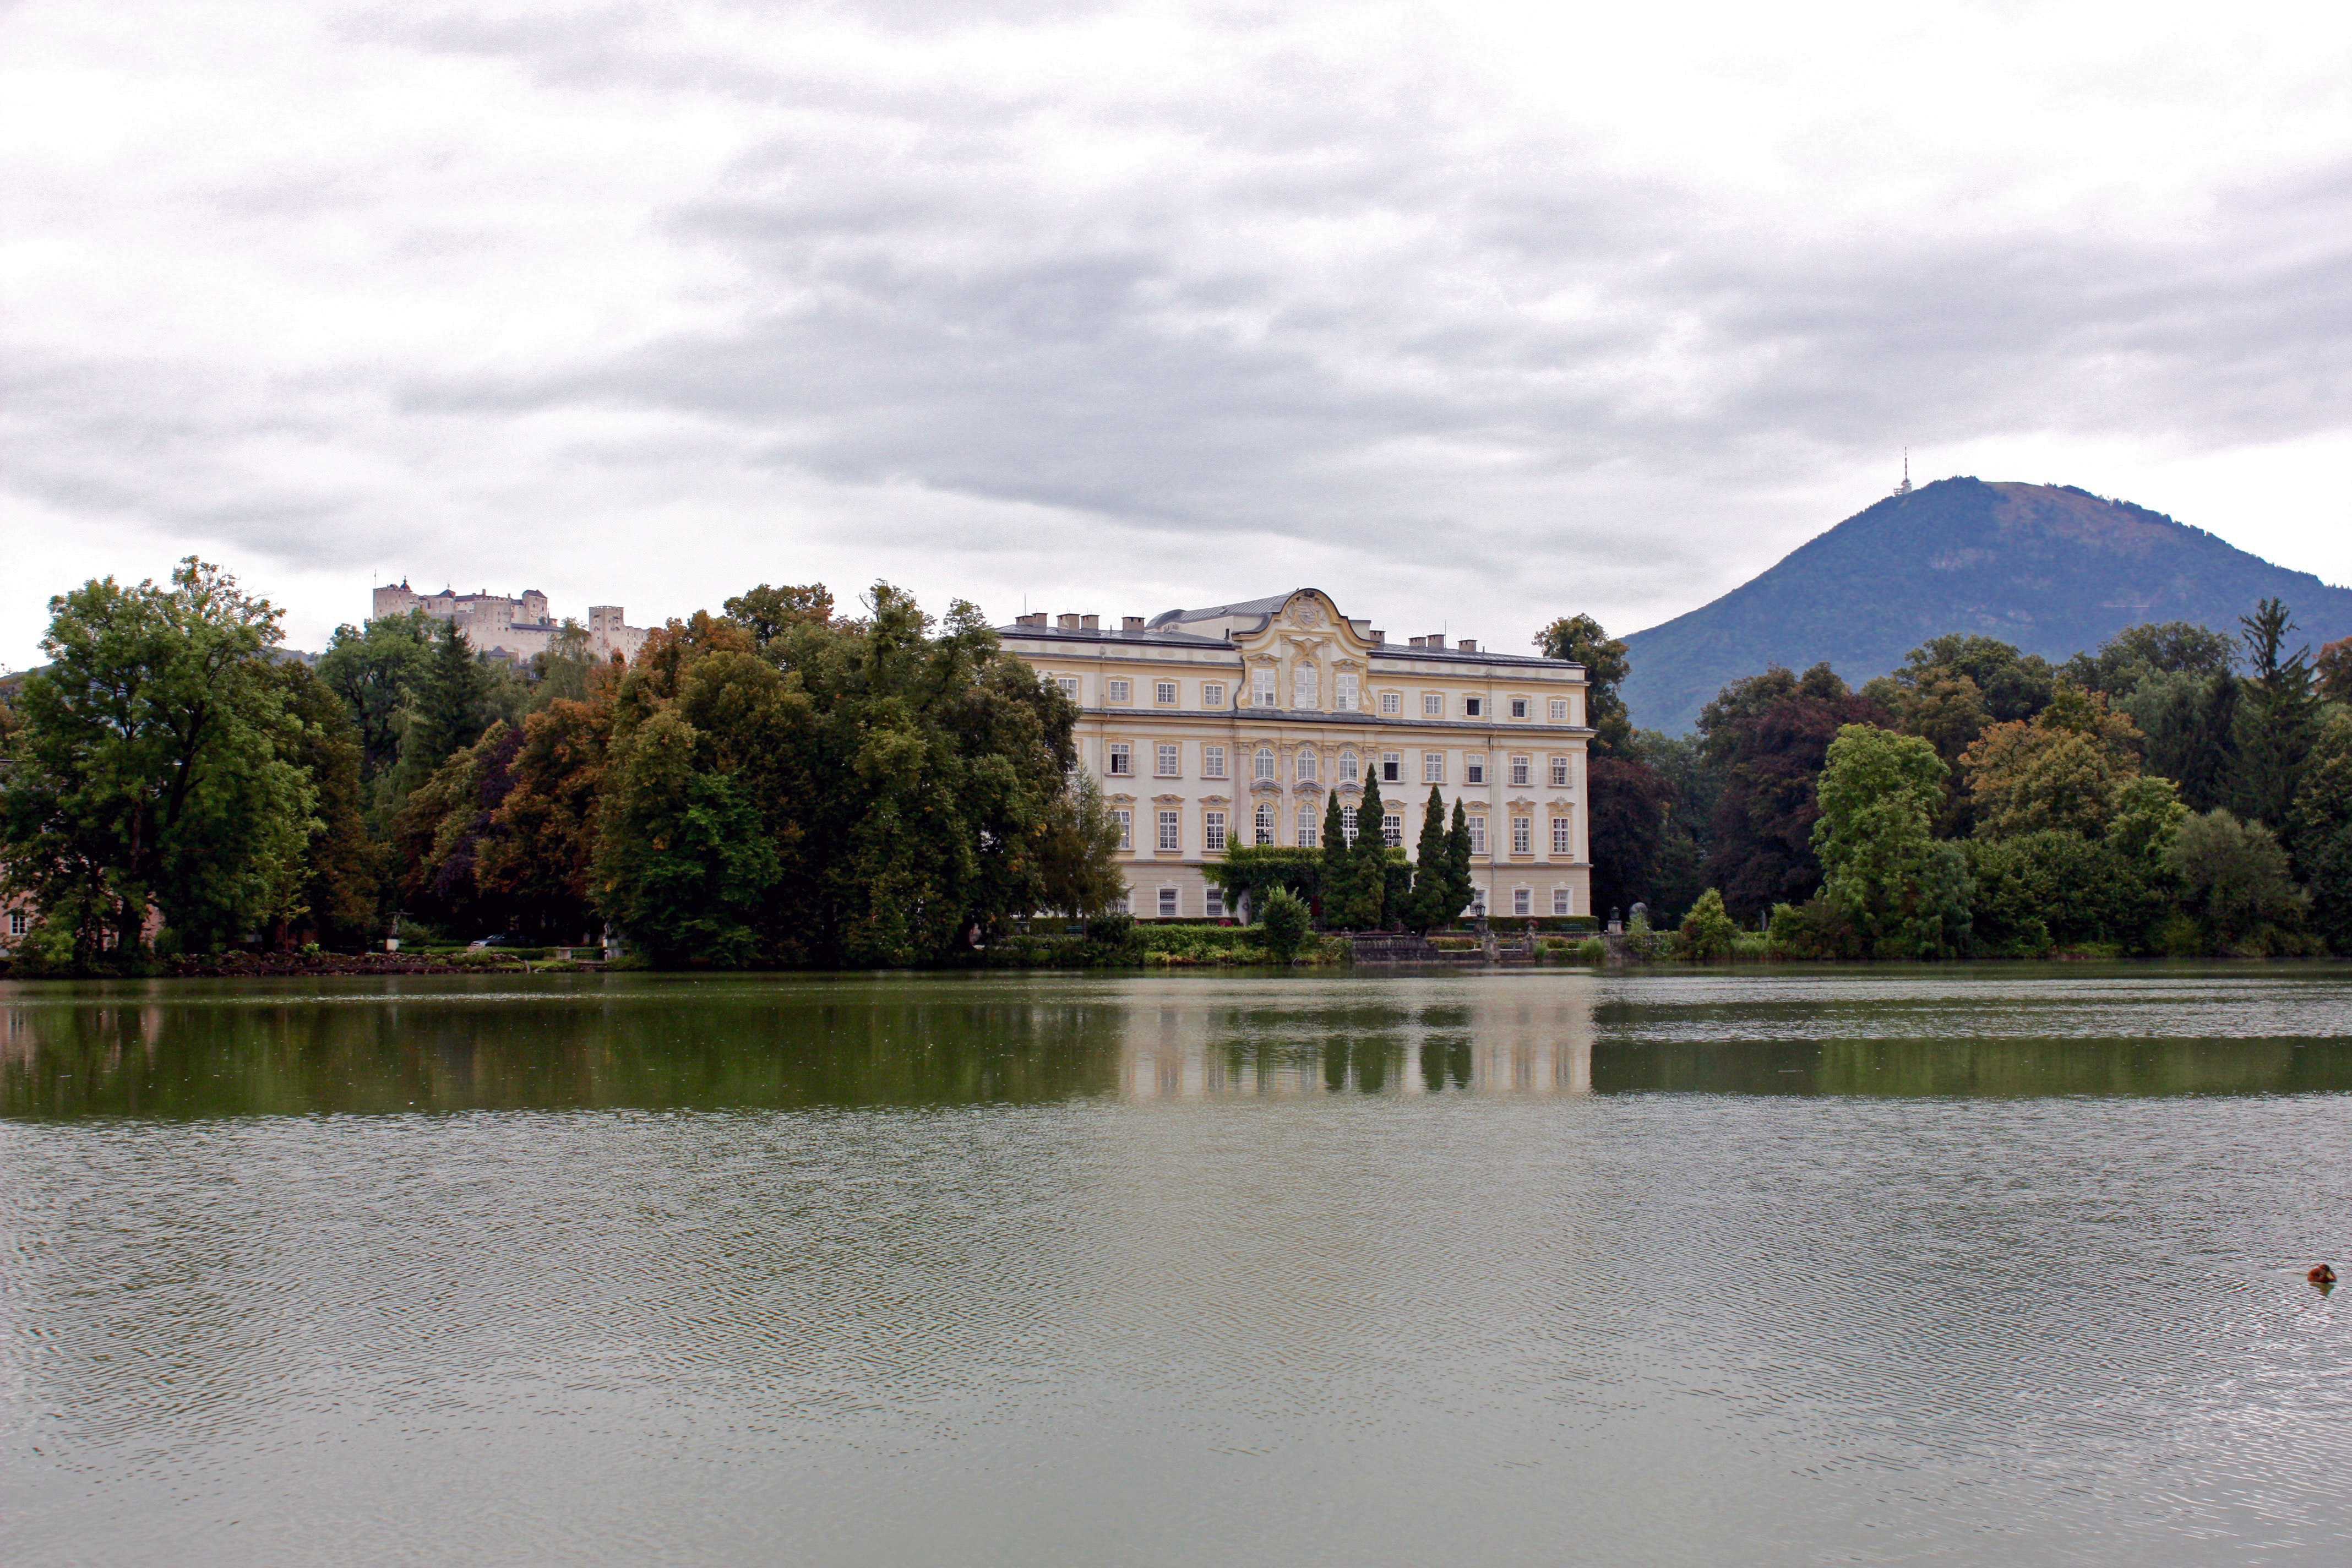 Leopoldskron Palace, in Leopoldskron-Moos, with Hohensalzburg Fortress in the background